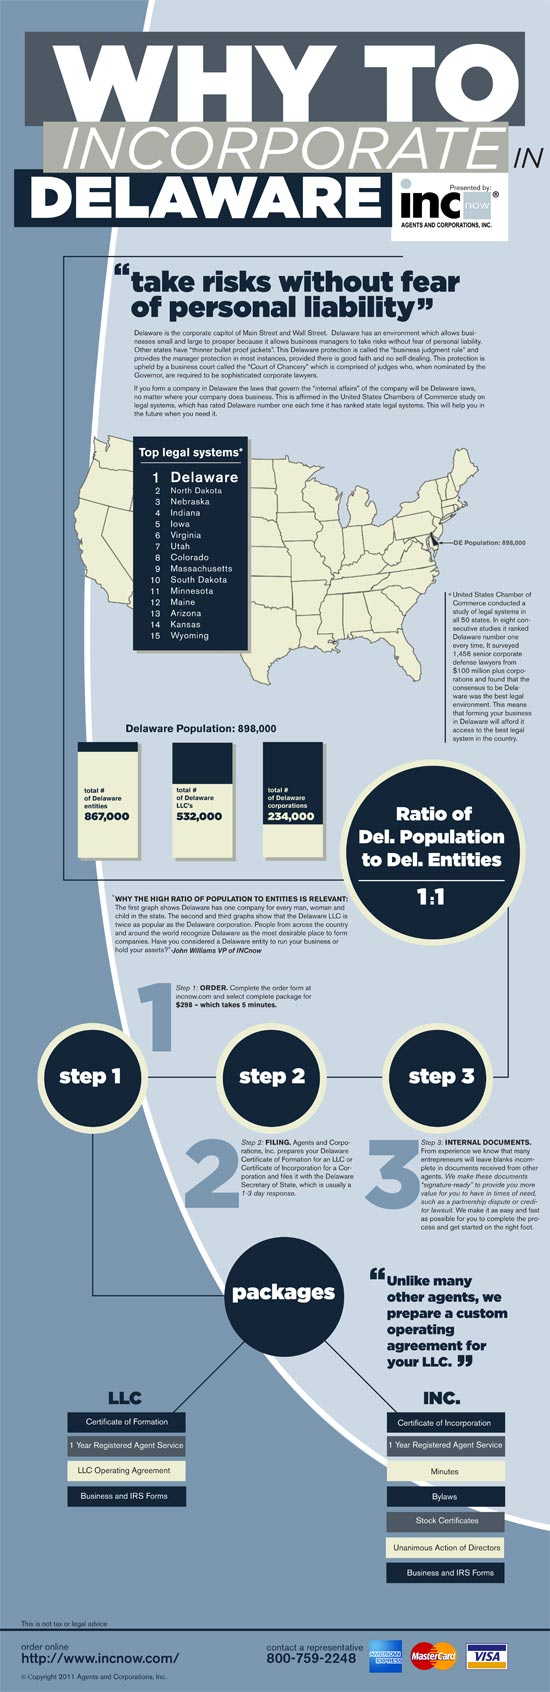 Why To Incorporate In Delaware Infographic. Term Life Insurance For Seniors. Law School Application Checklist. Apply For A Debt Consolidation Loan Online. Wake Forest Photography Heating System Cleaner. Can You Apply For A Bank Account Online. Foundation Repair Knoxville Medical Web Site. Furnace Repair Chicago Thermal Inkjet Printer. Corporate Sustainability Reports